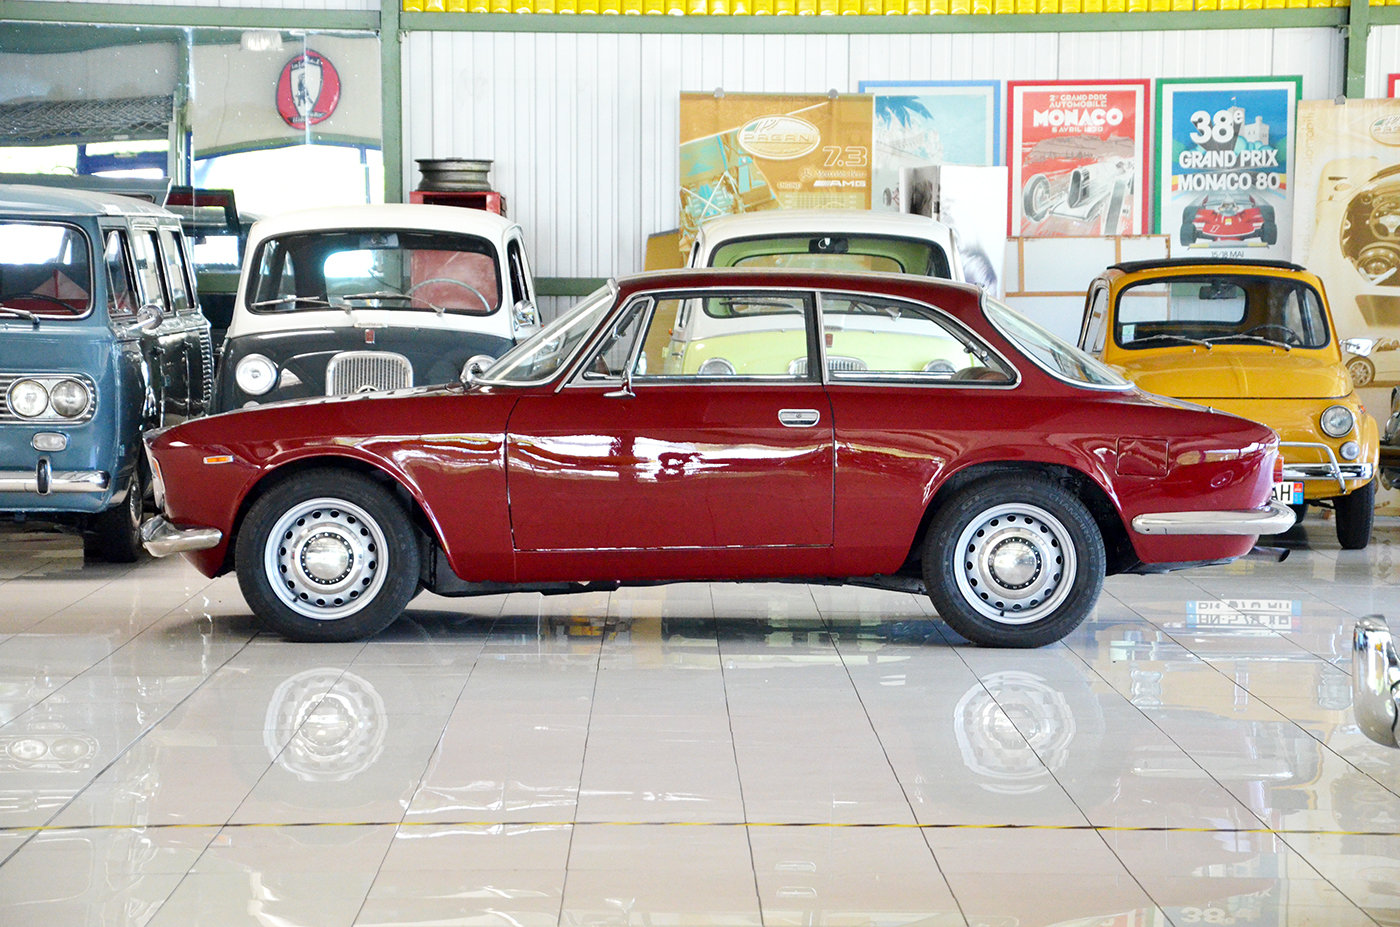 1970 Alfa Romeo GT Junior 1300 Stepnose - Excellent For Sale (picture 2 of 6)